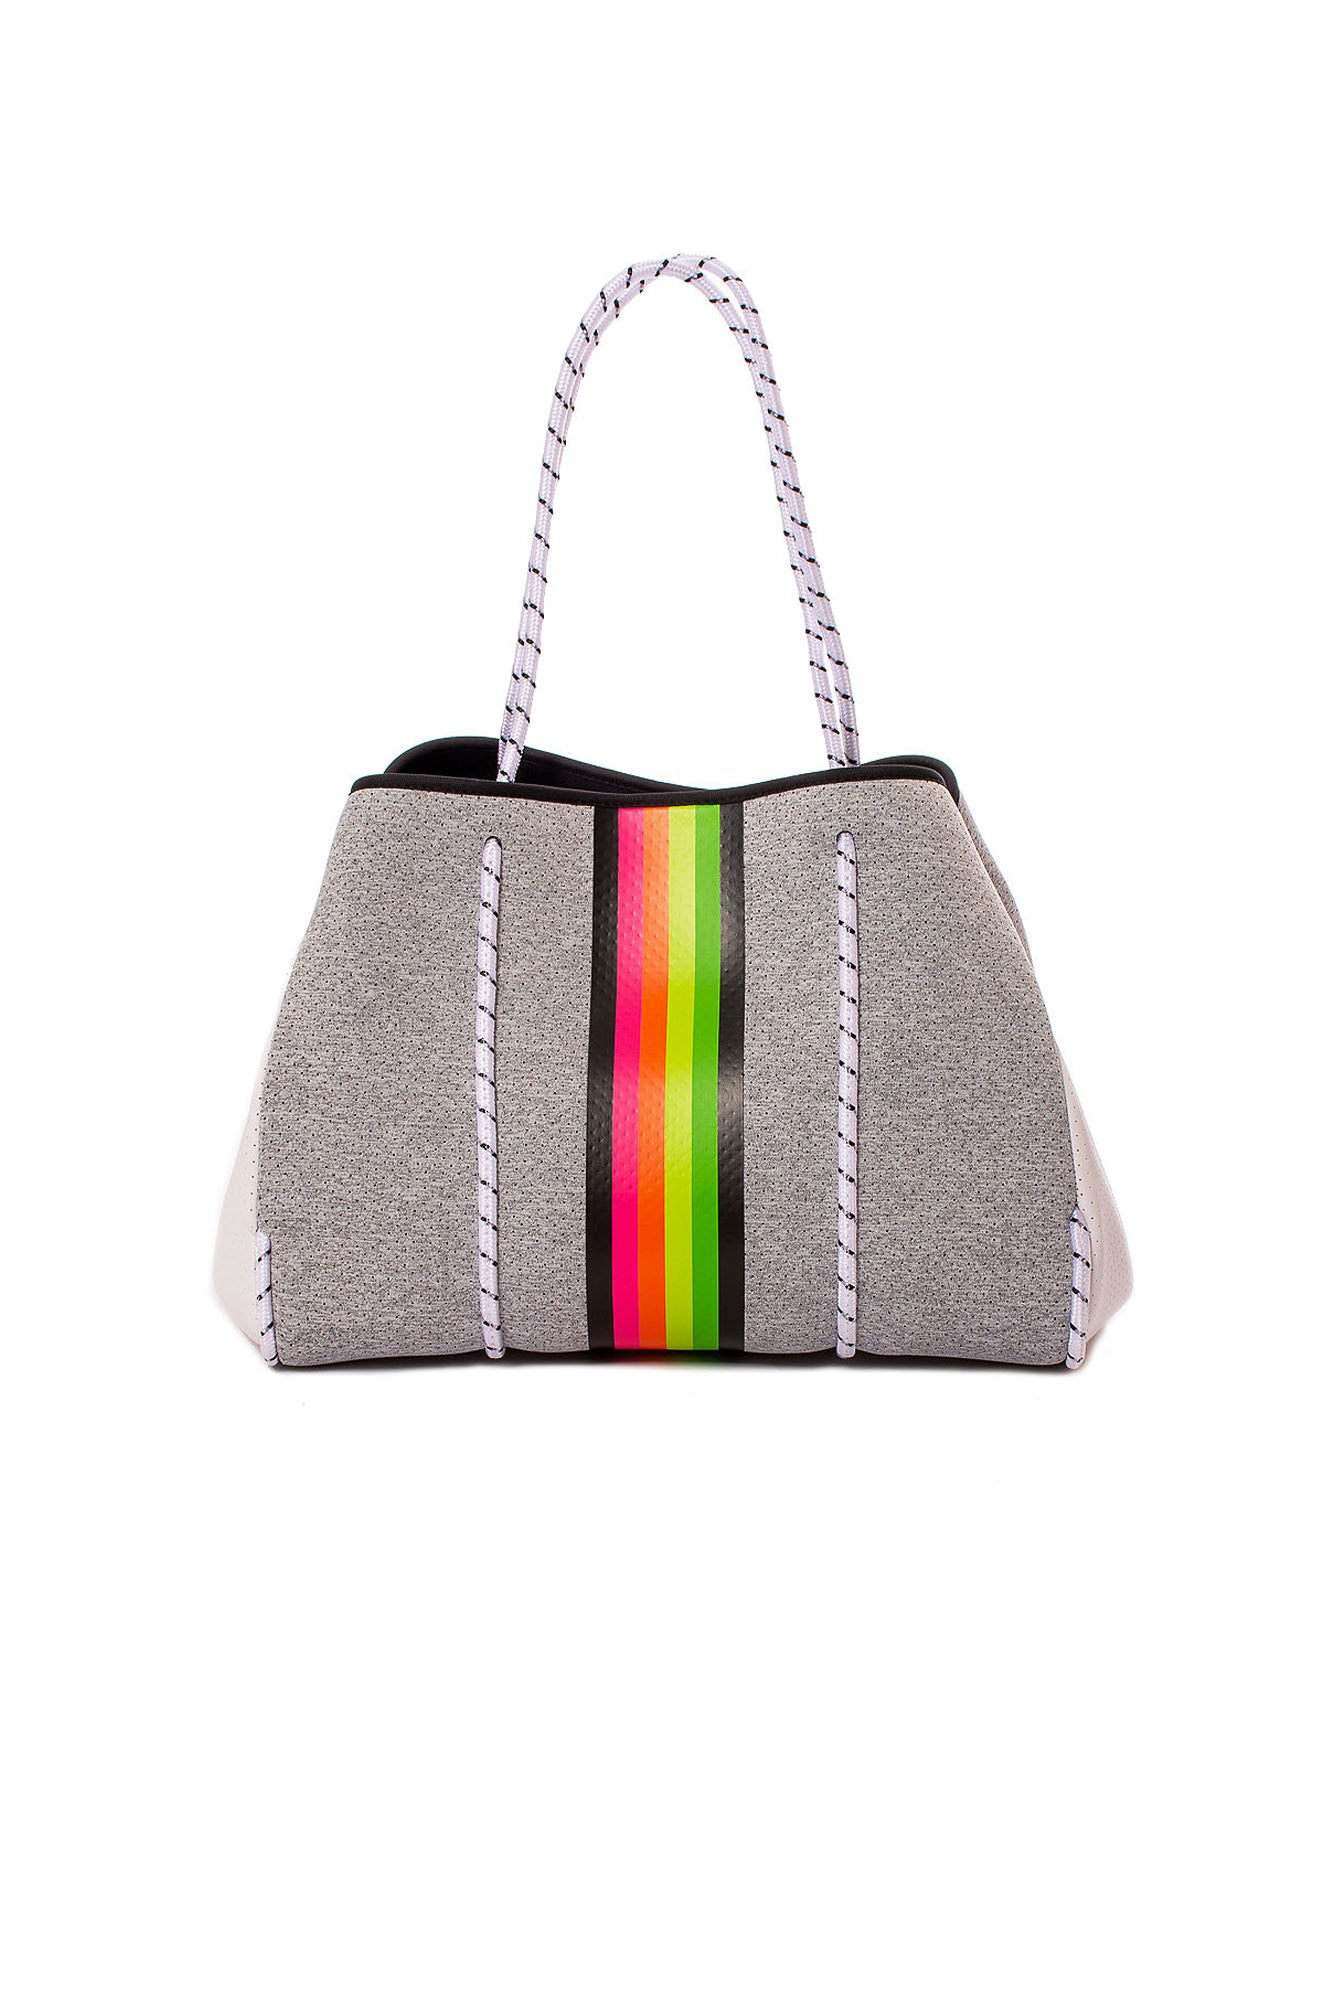 Greyson Glow Tote Bag with/Tethered Removable Wristlet (Style Glow, Heather Grey w/Stripes) by Haute Shore